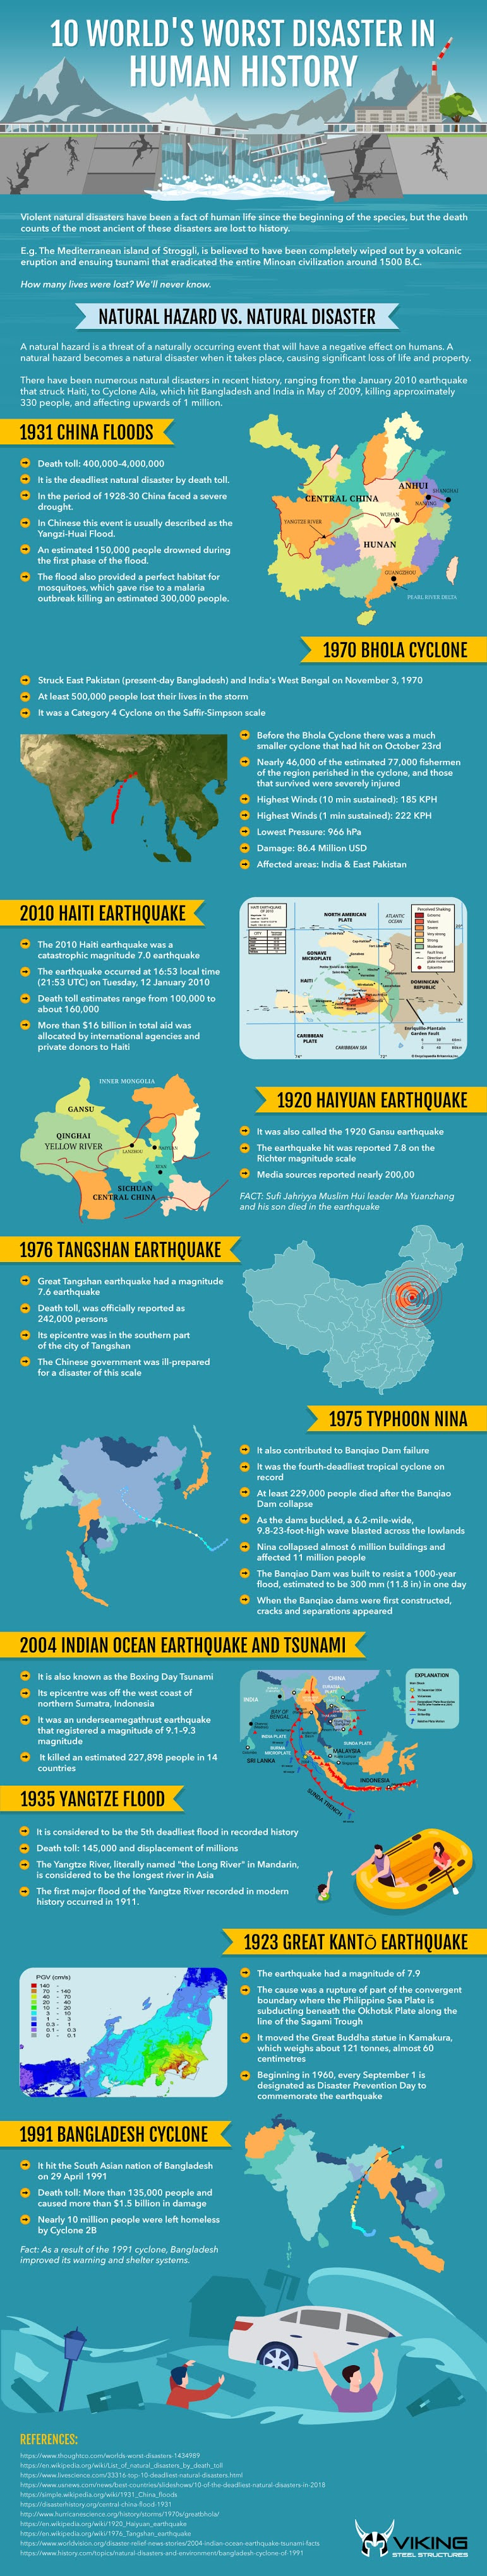 10 World's Worst Disaster In Human History #infographic#Education #infographics #Disaster In Human History